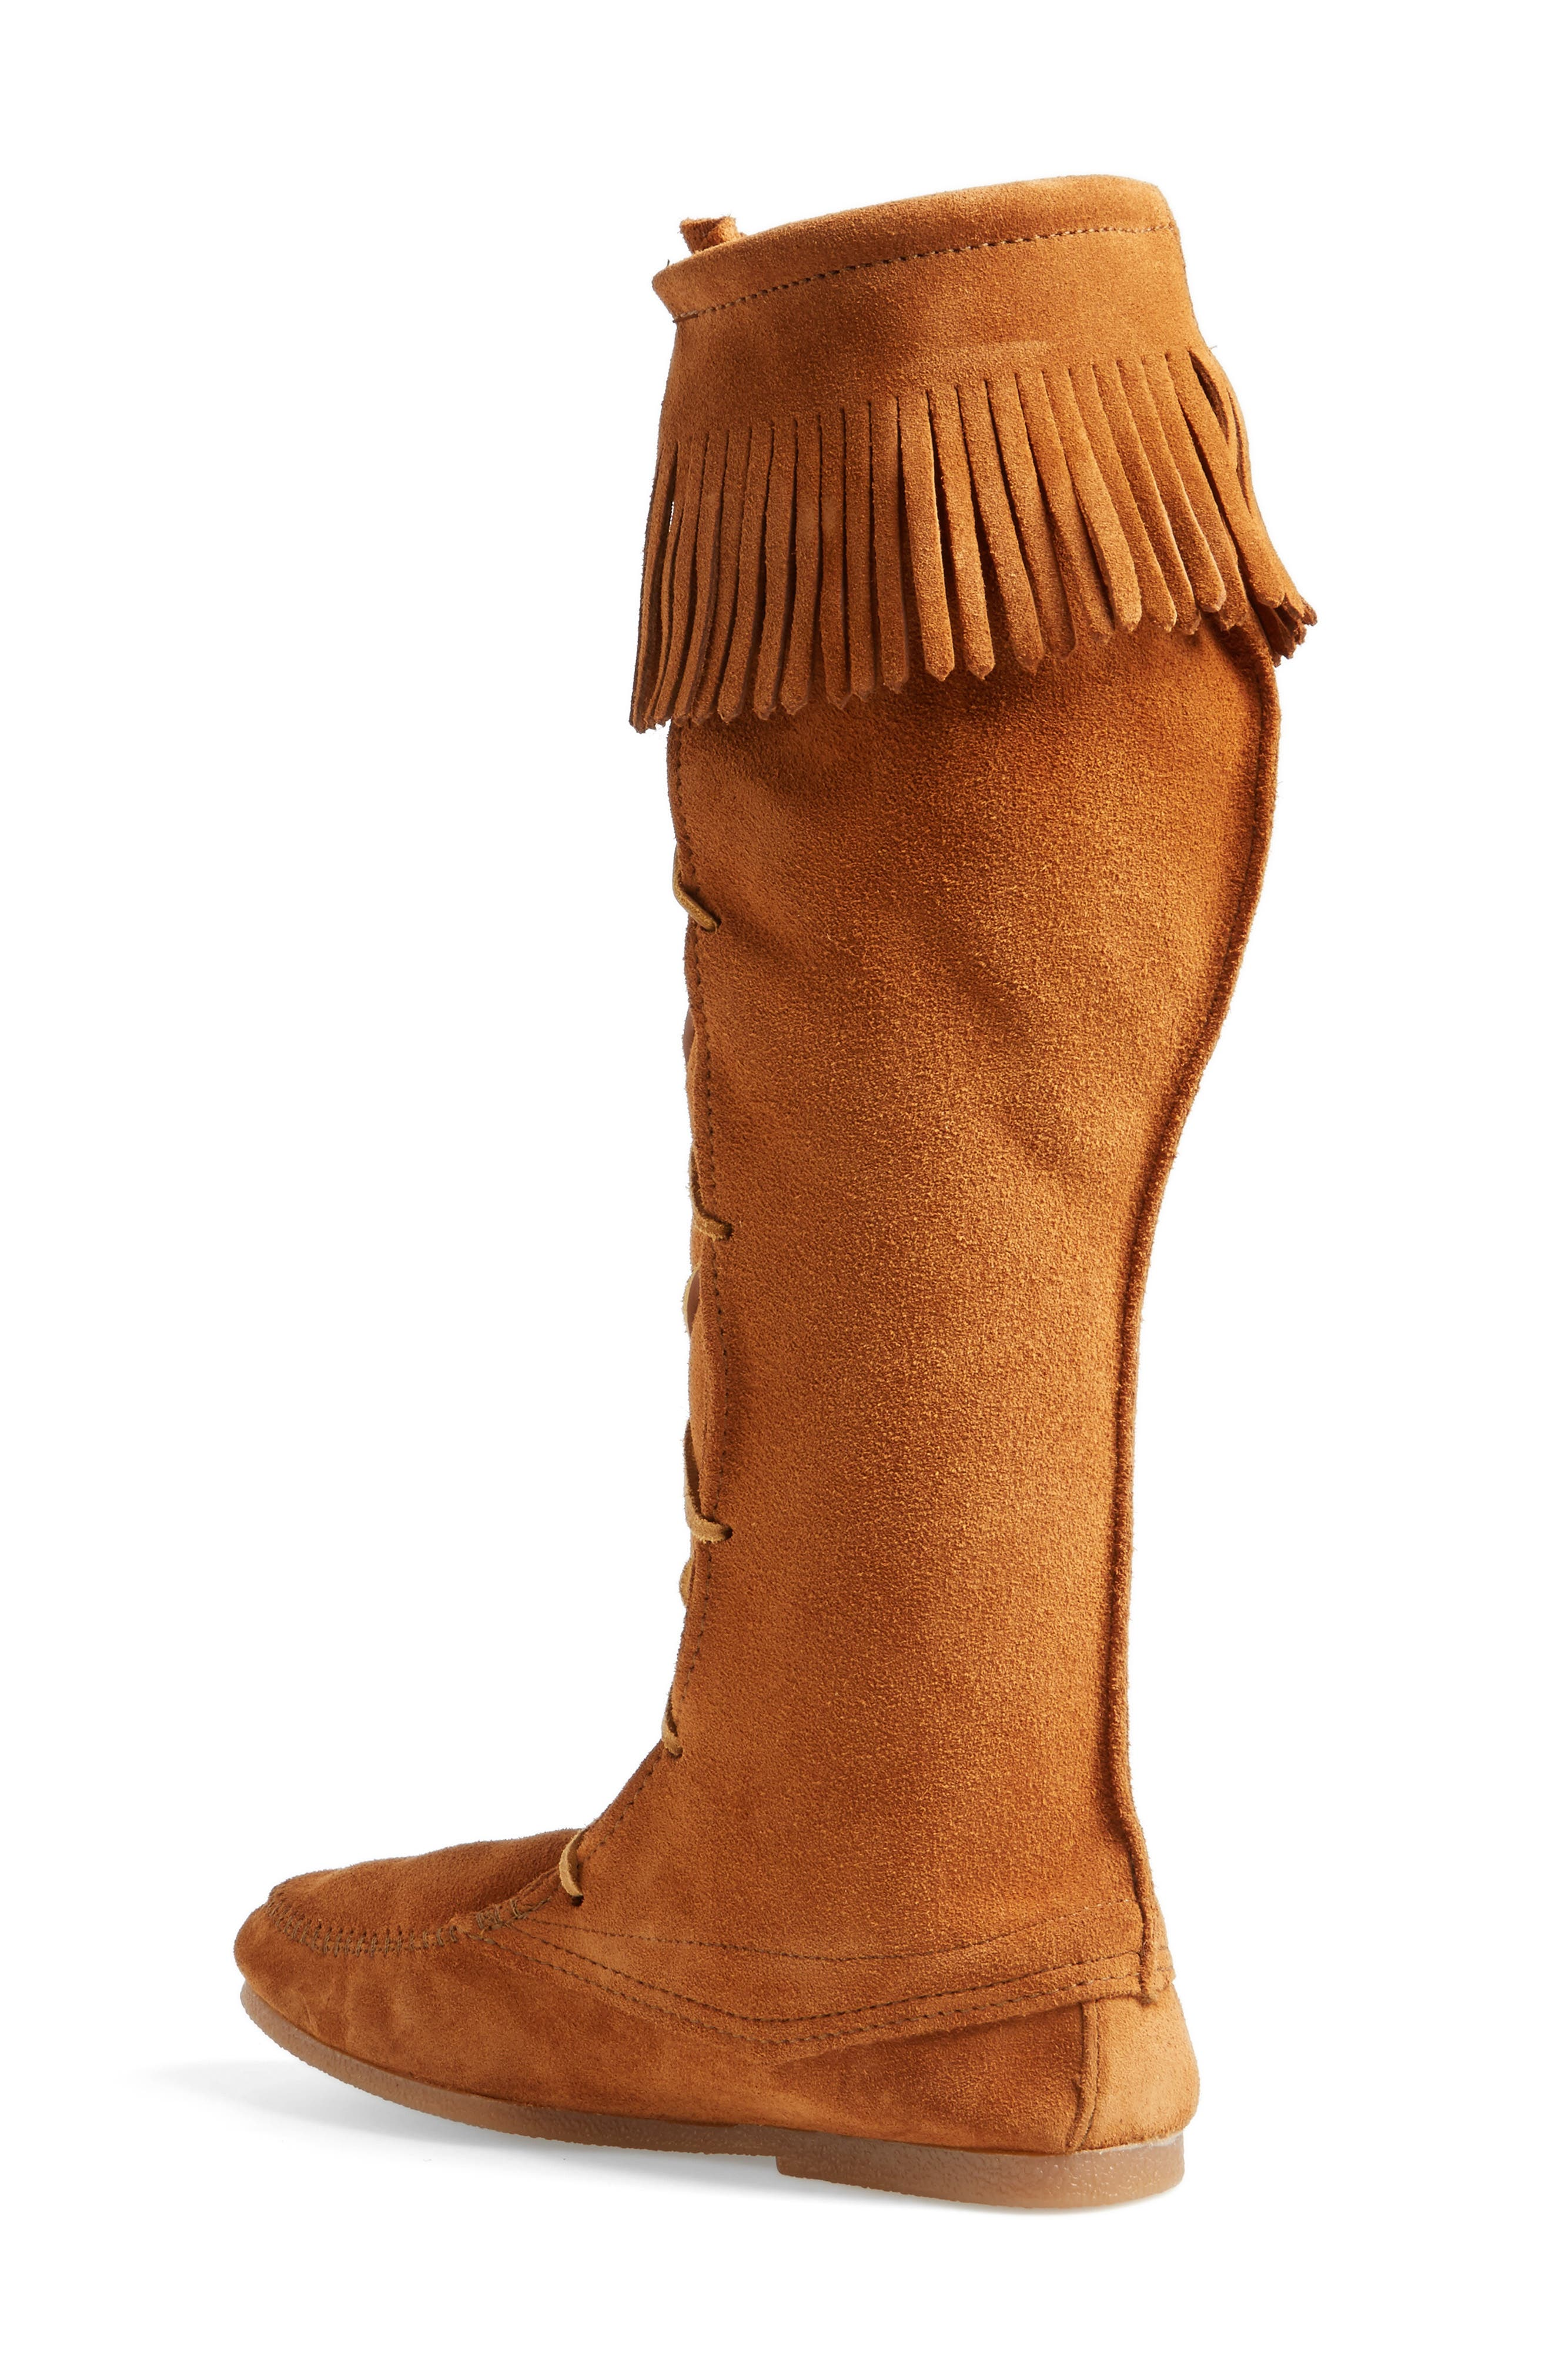 Knee High Moccasin Boot,                             Alternate thumbnail 2, color,                             Brown Suede